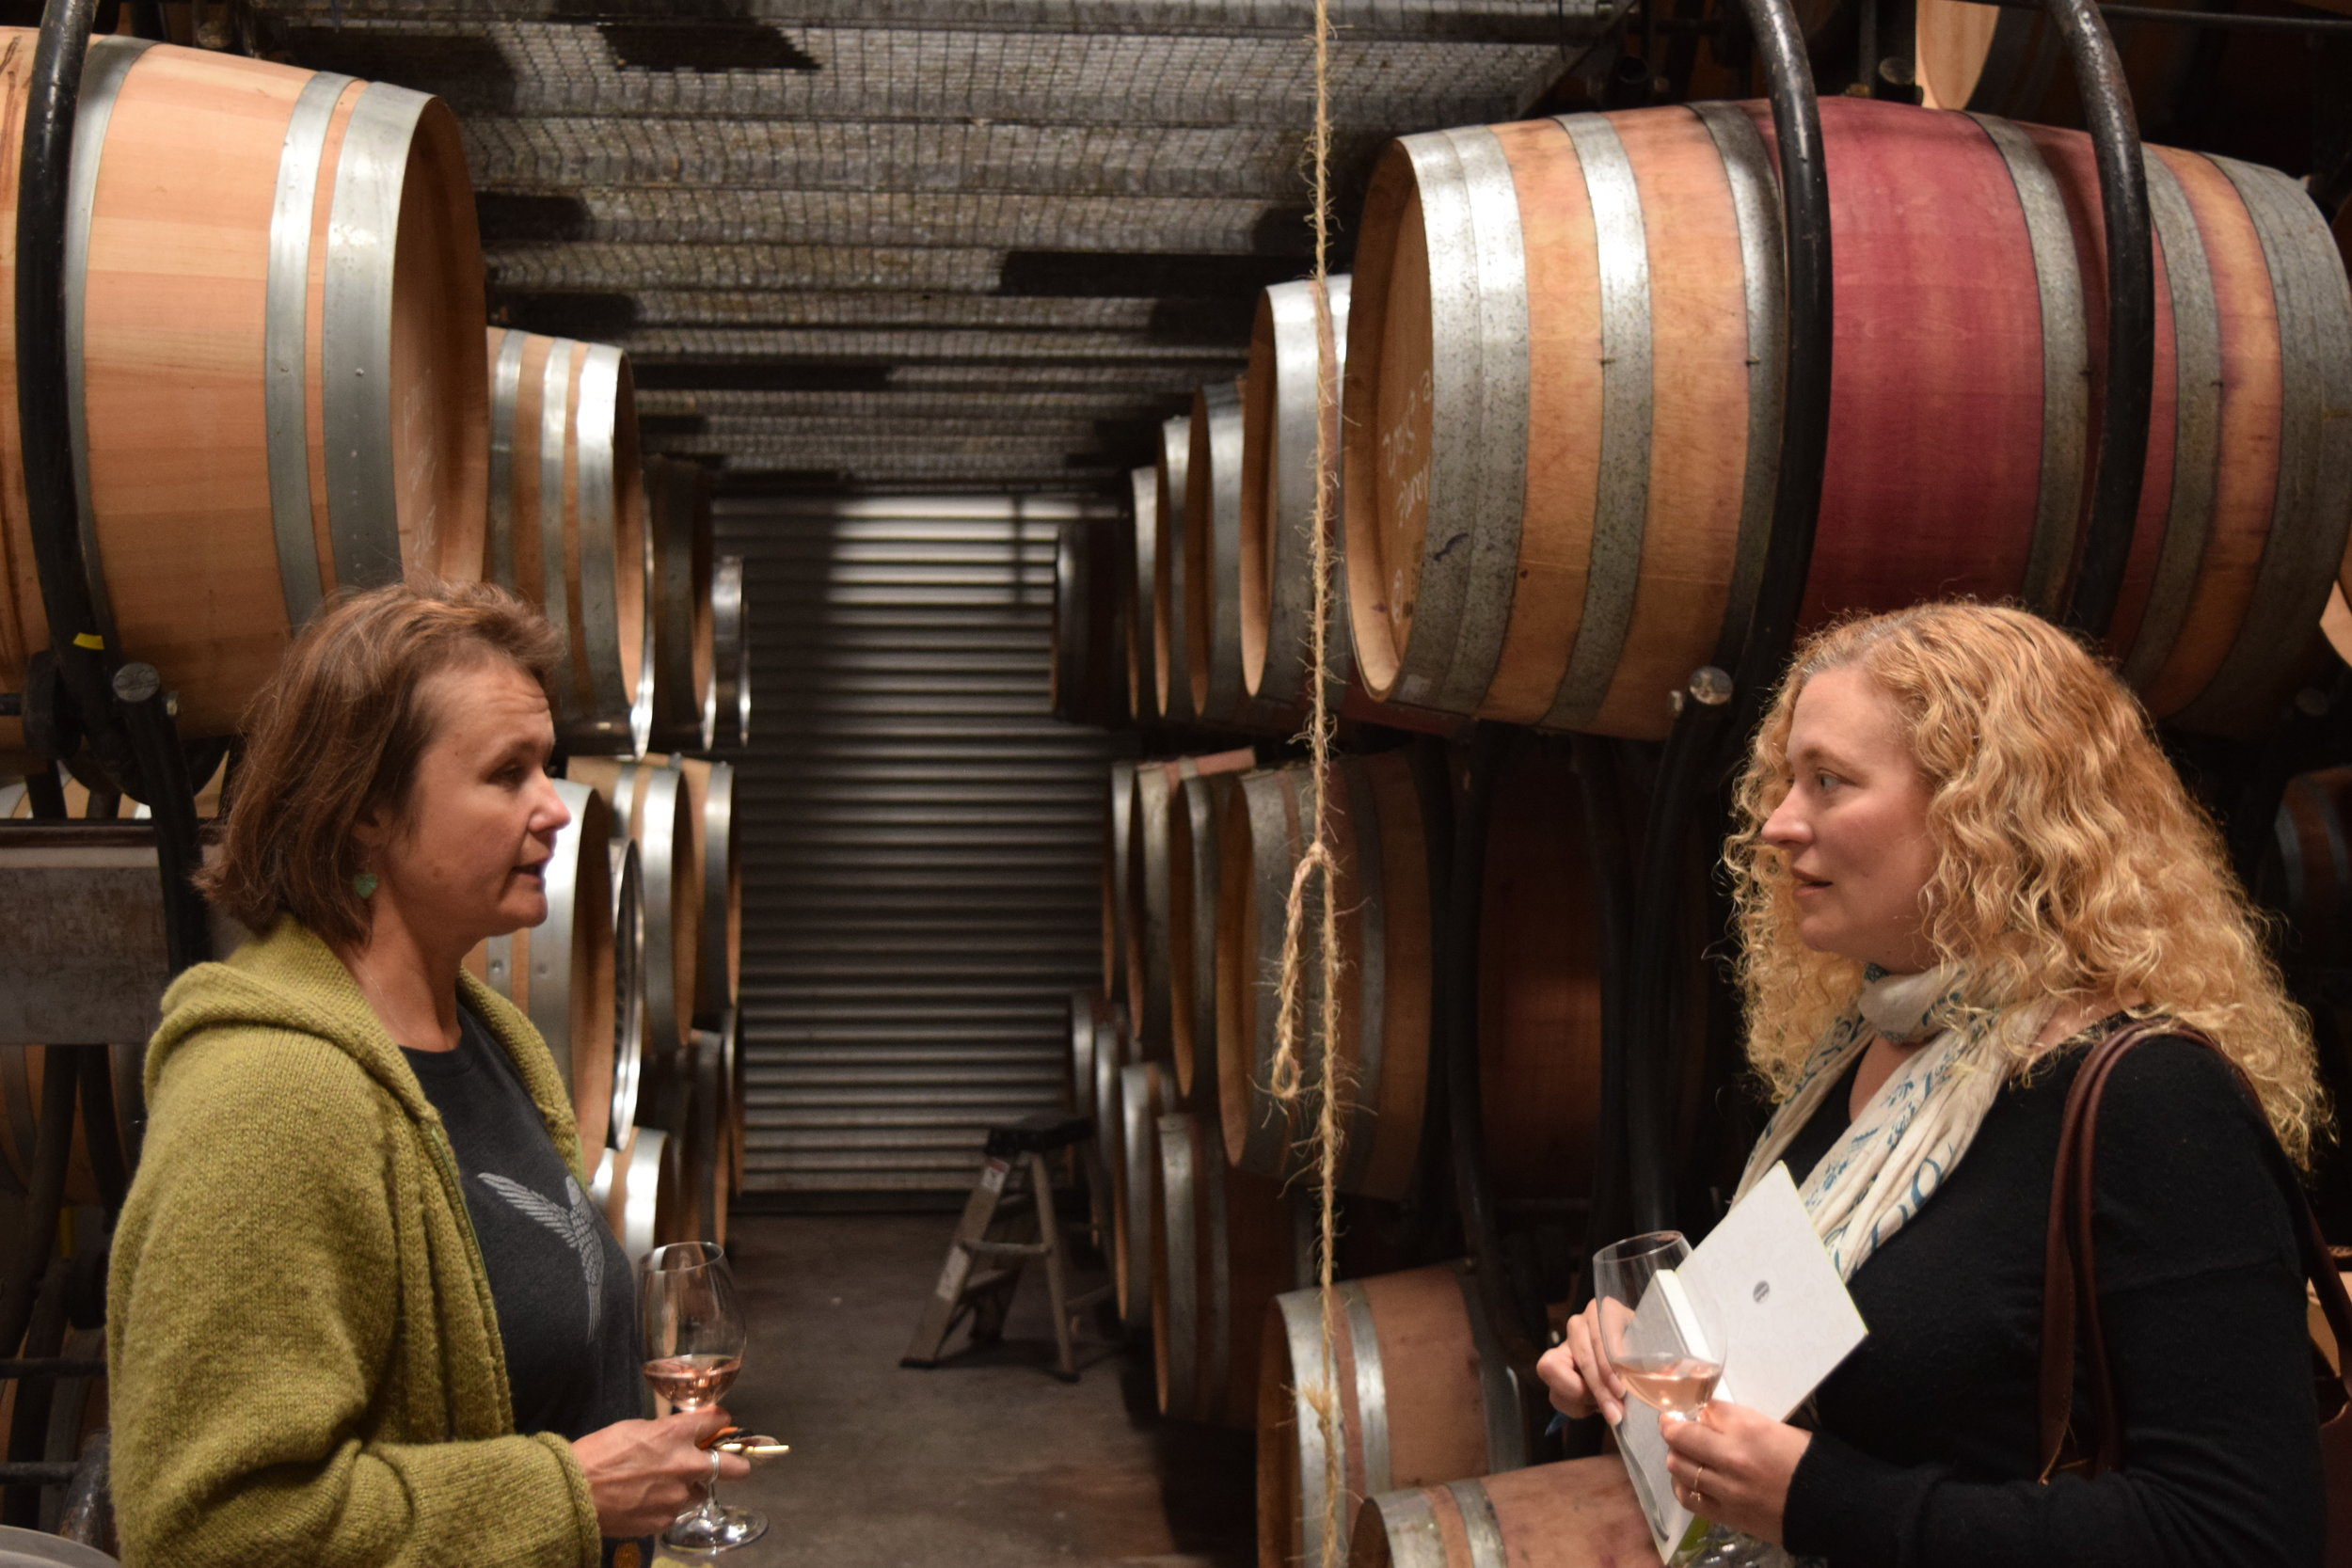 Wine talk with Annette Hoff in the Barrel Room at Cima Collina. Photo by Gabriel Manzo.